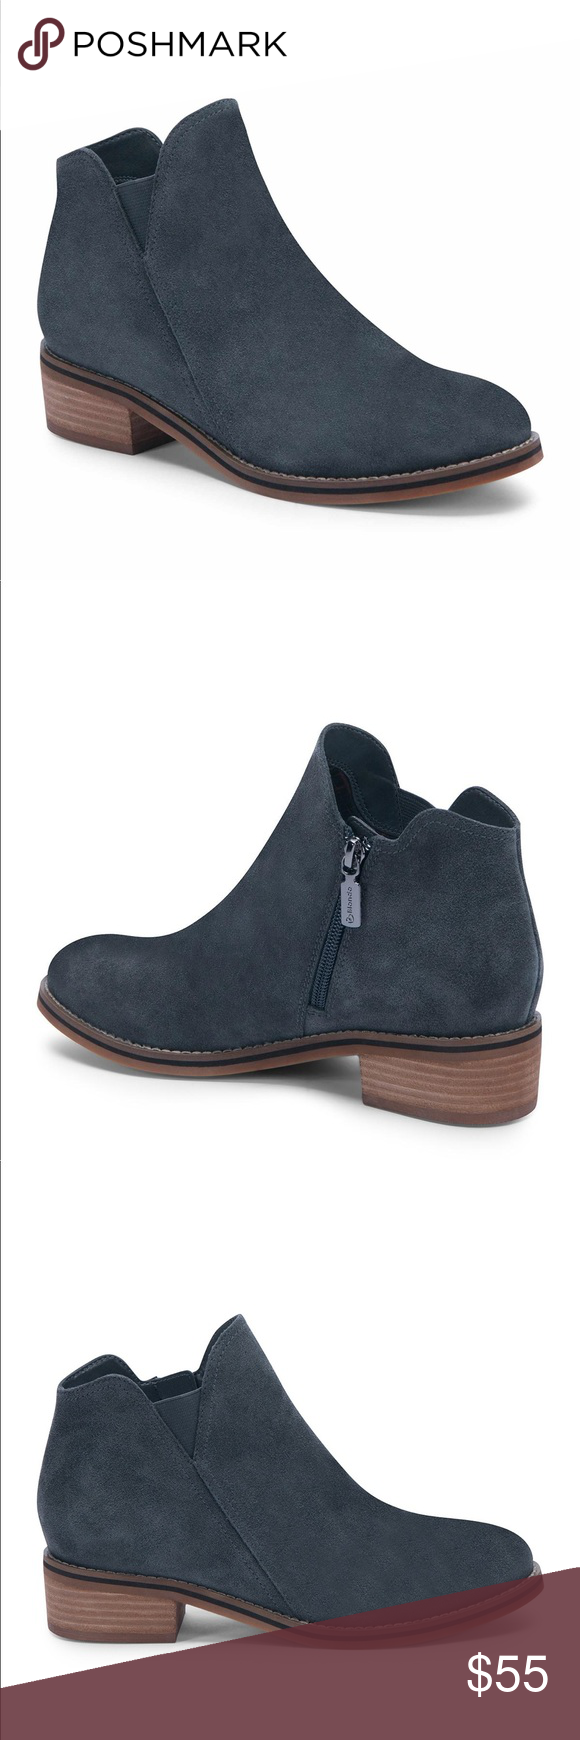 713c9a6d4a7 Blondo Lanka waterproof suede ankle bootie This abbreviated bootie is long  on style and practicality thanks